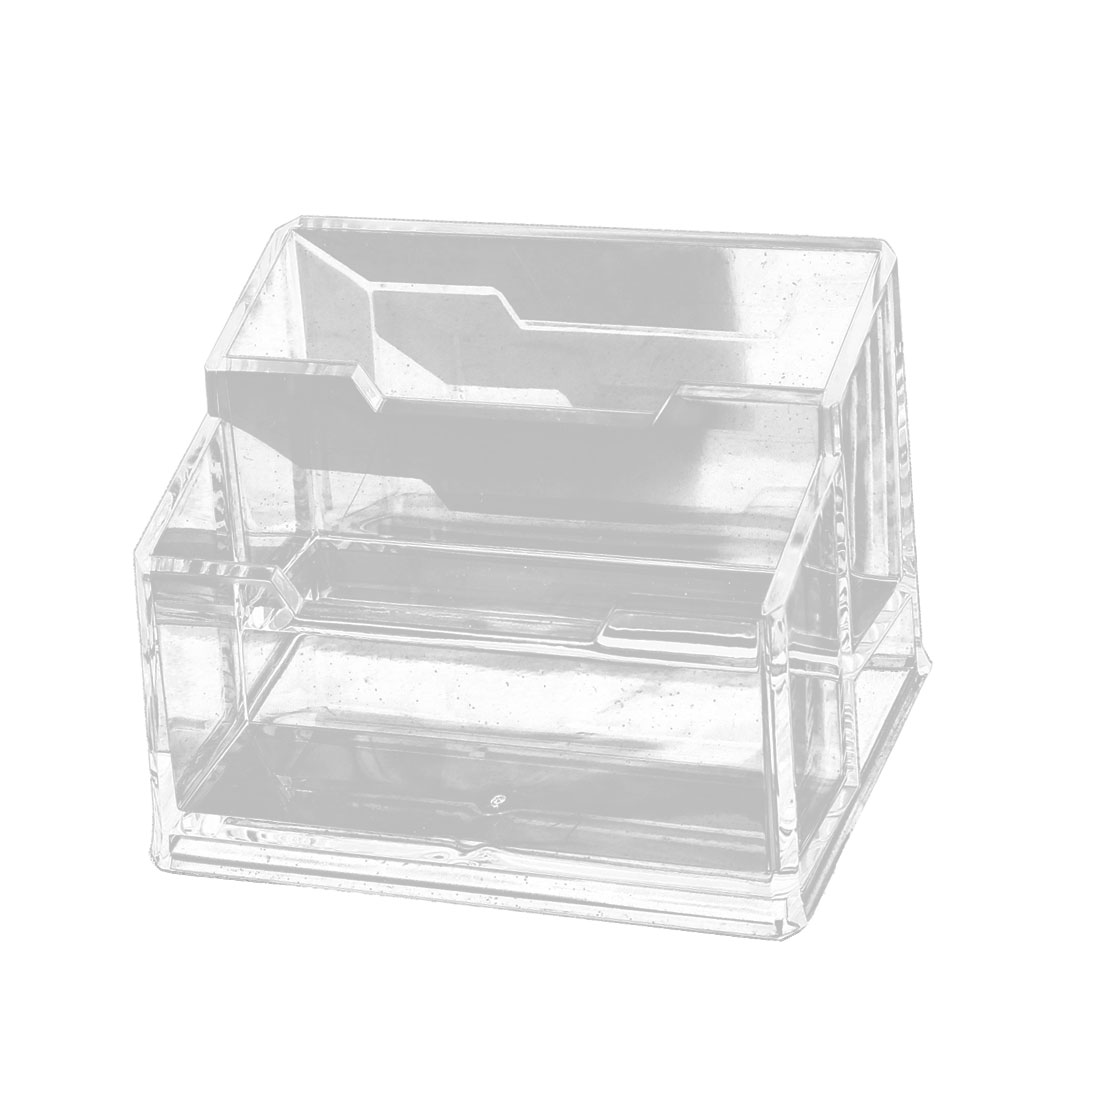 Transparent 2 Compartments Business Name Card Organizer Stand Holder